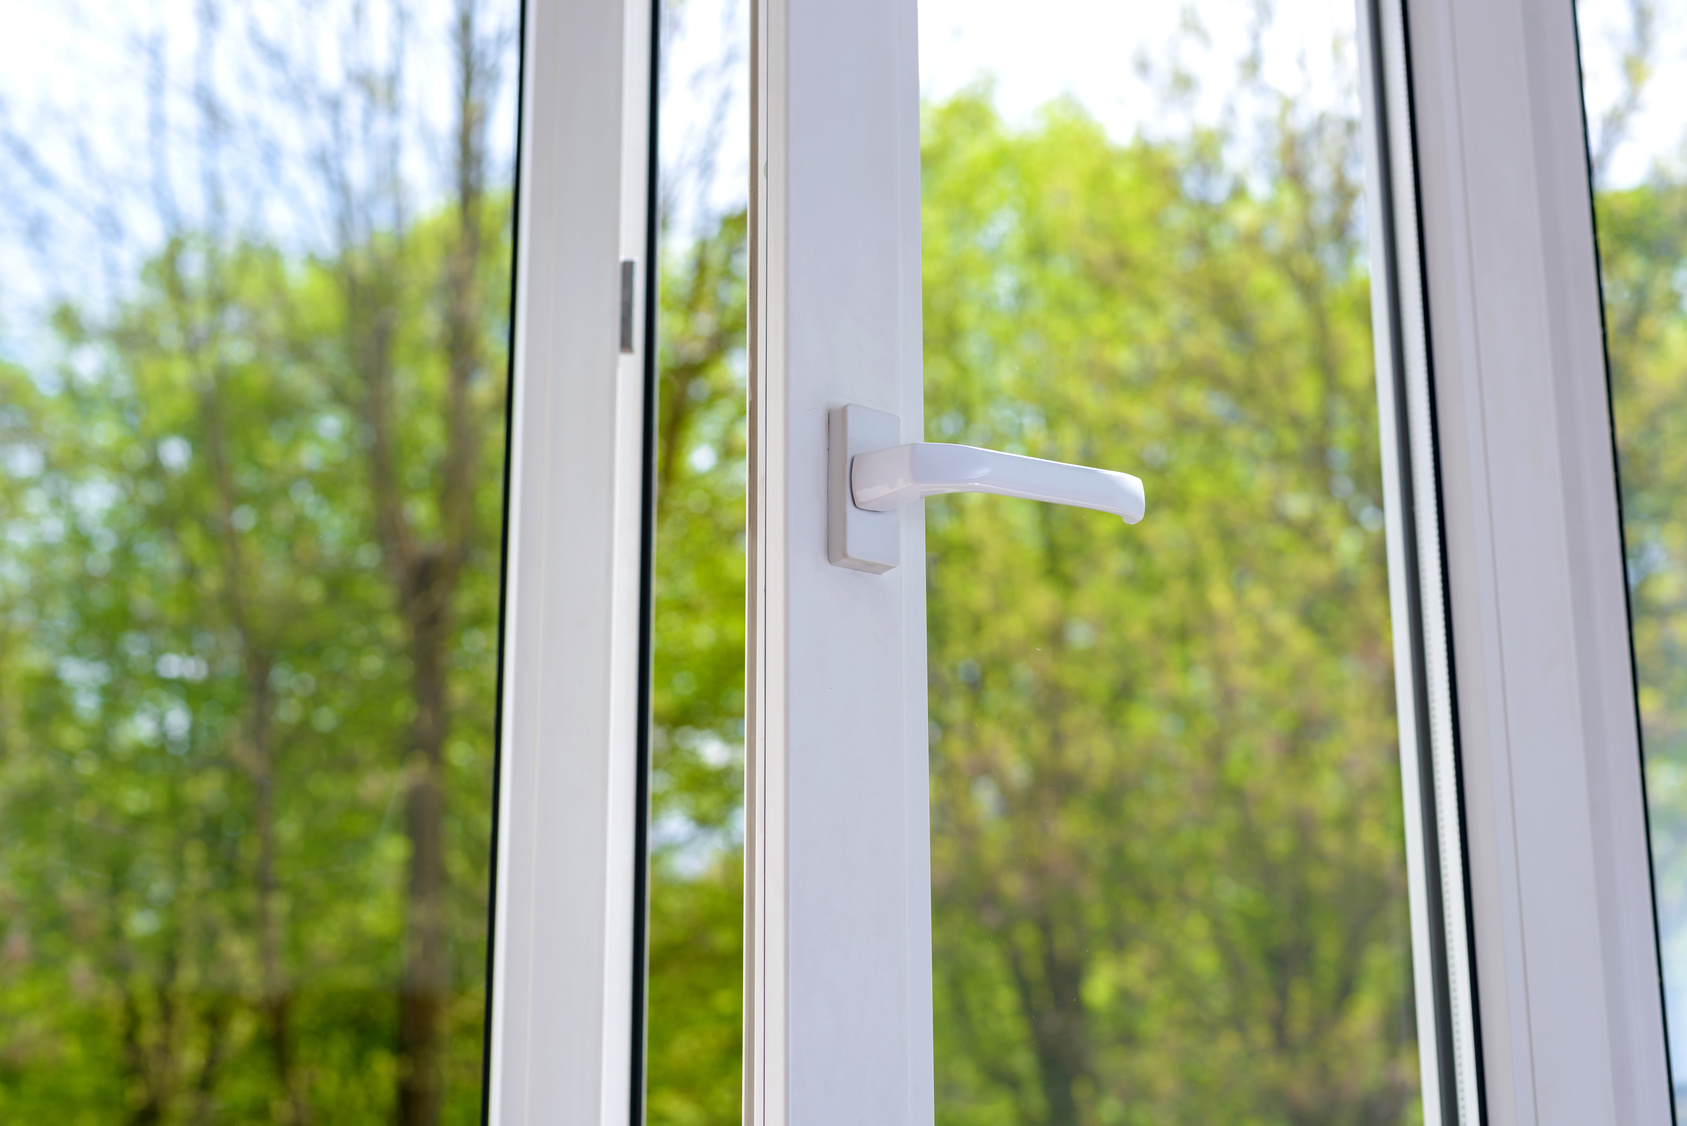 Vinyl replacement windows vs fiberglass windows virginia beach for Fiberglass replacement windows